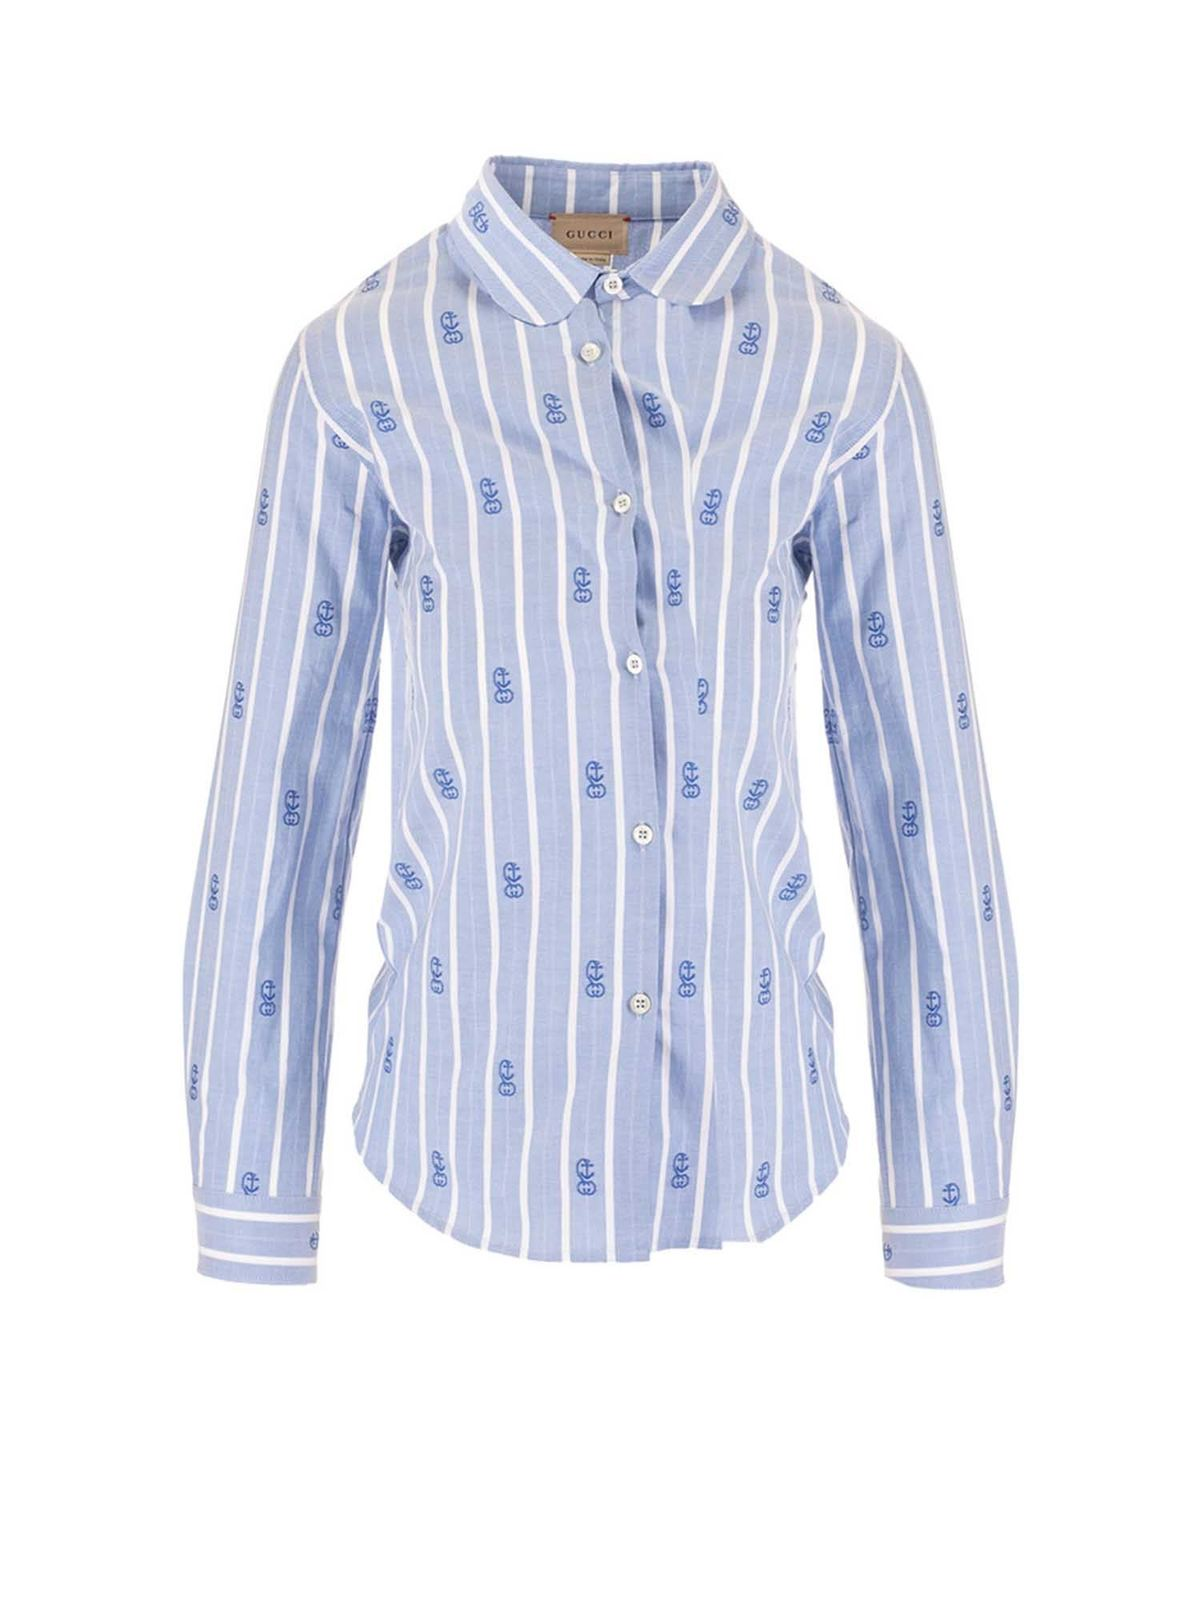 Gucci GG ANCHOR SHIRT IN LIGHT BLUE GUCCI KIDS